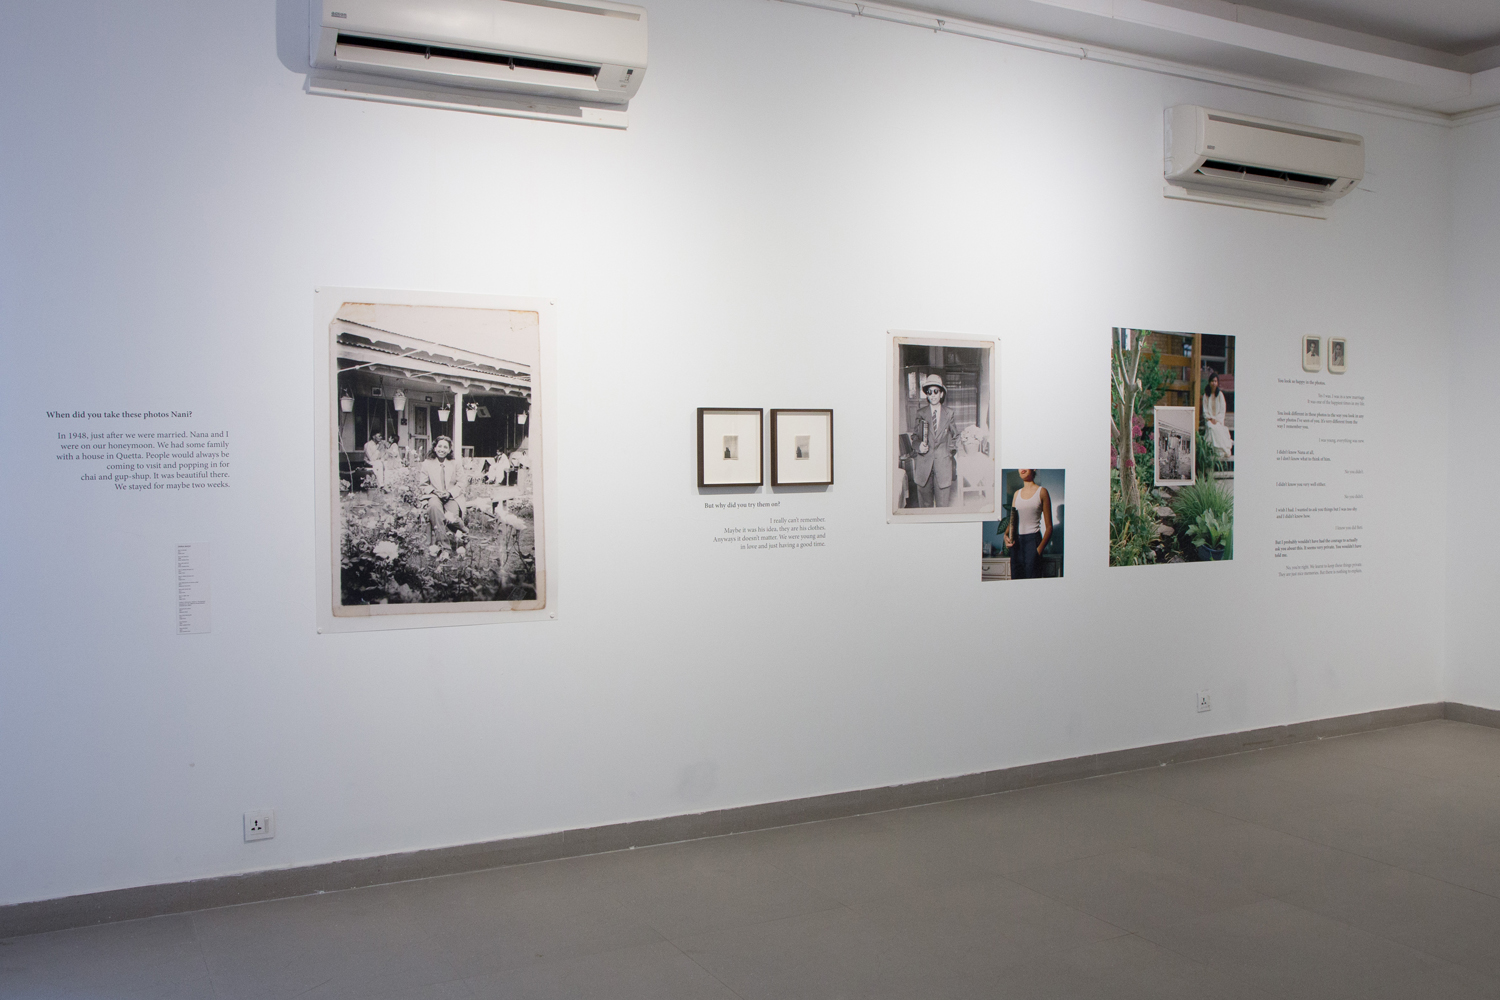 Installation View from VM Art Gallery at the 2017 Karachi Biennale Photo courtesy of the artist.